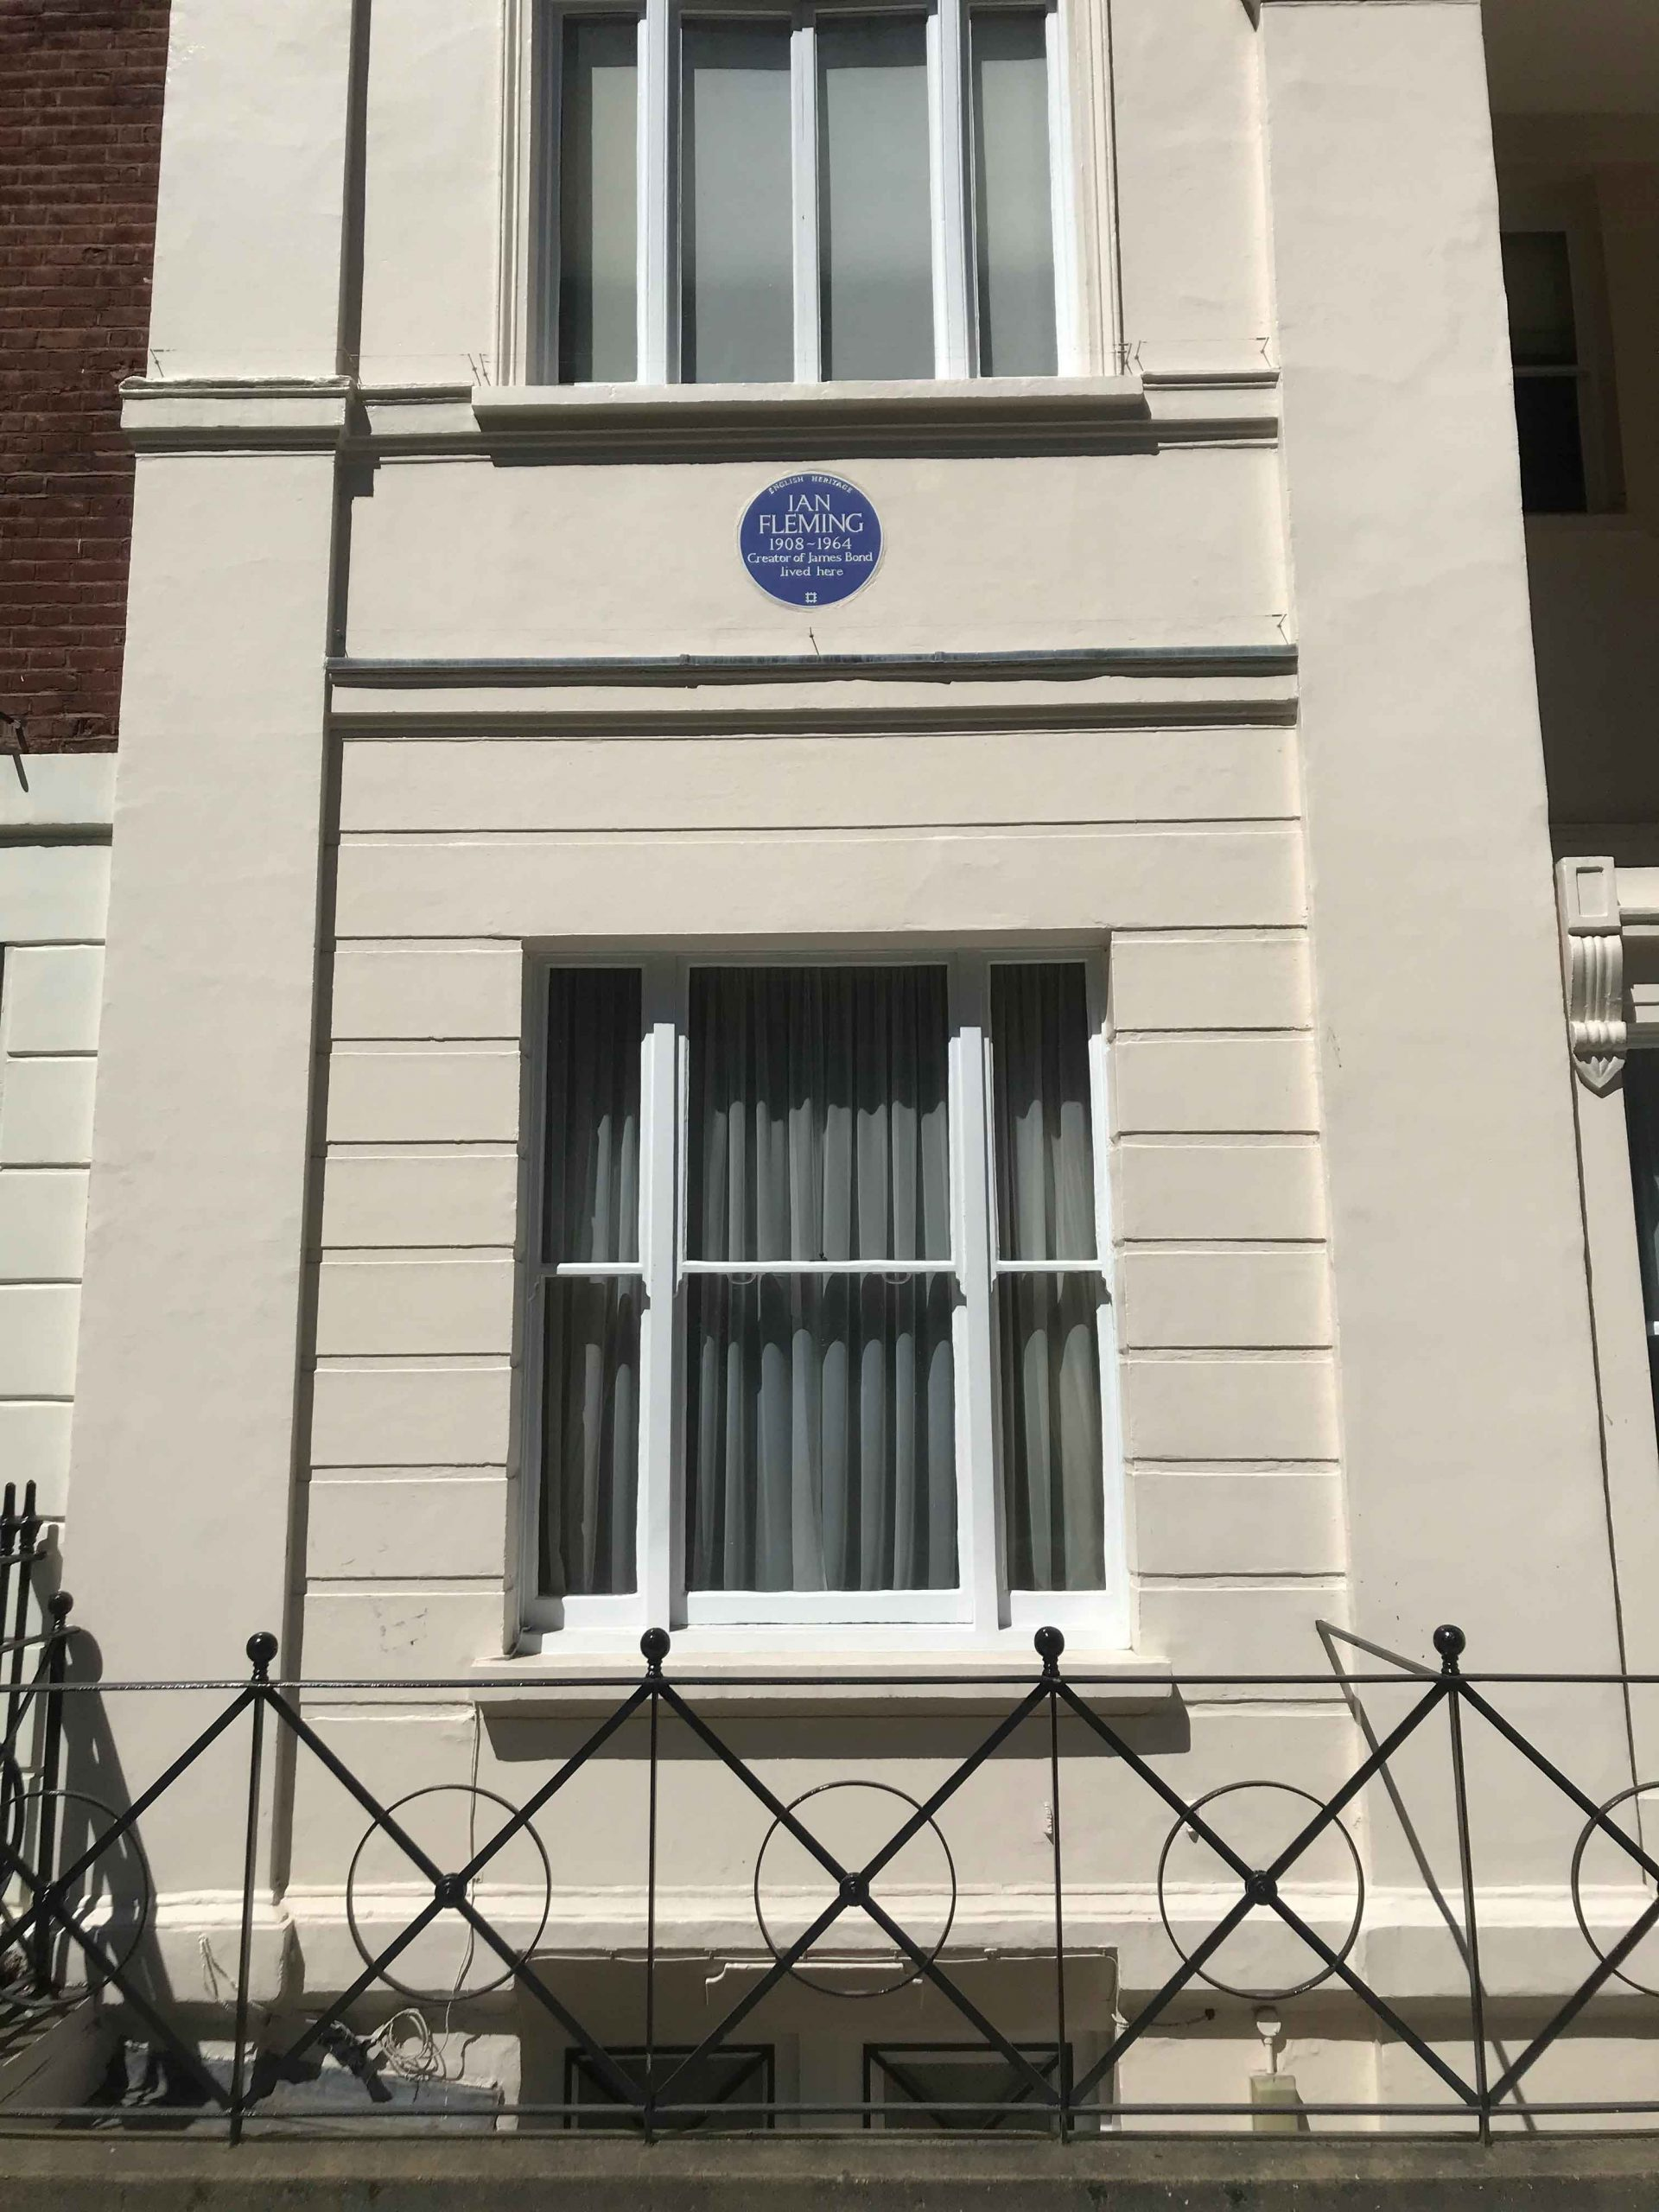 Ian Fleming House with blue plaque